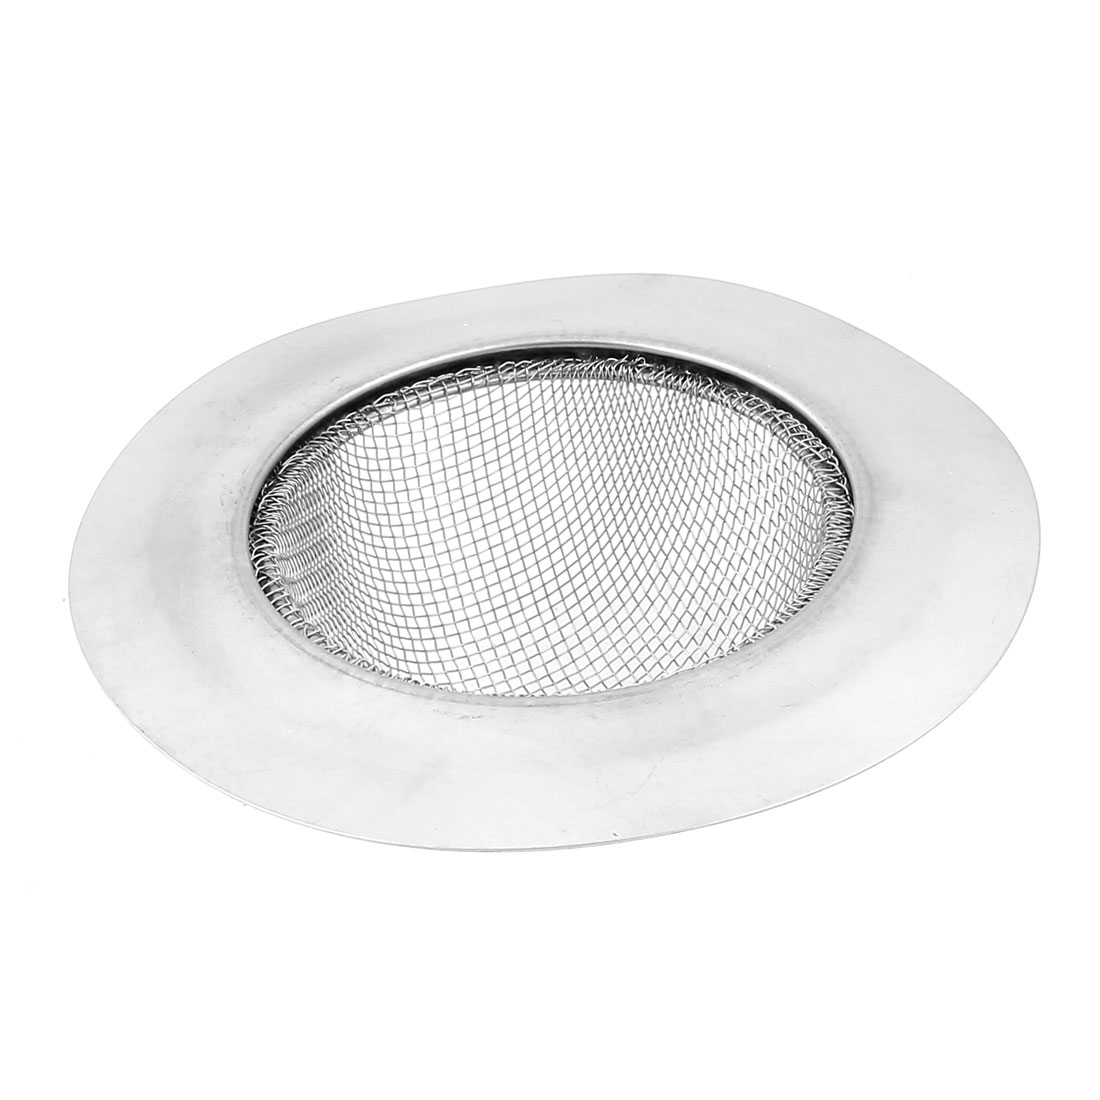 Bathroom Kitchenware Drain Sink Strainer Garbage Stopper Basket Filter Silver Tone